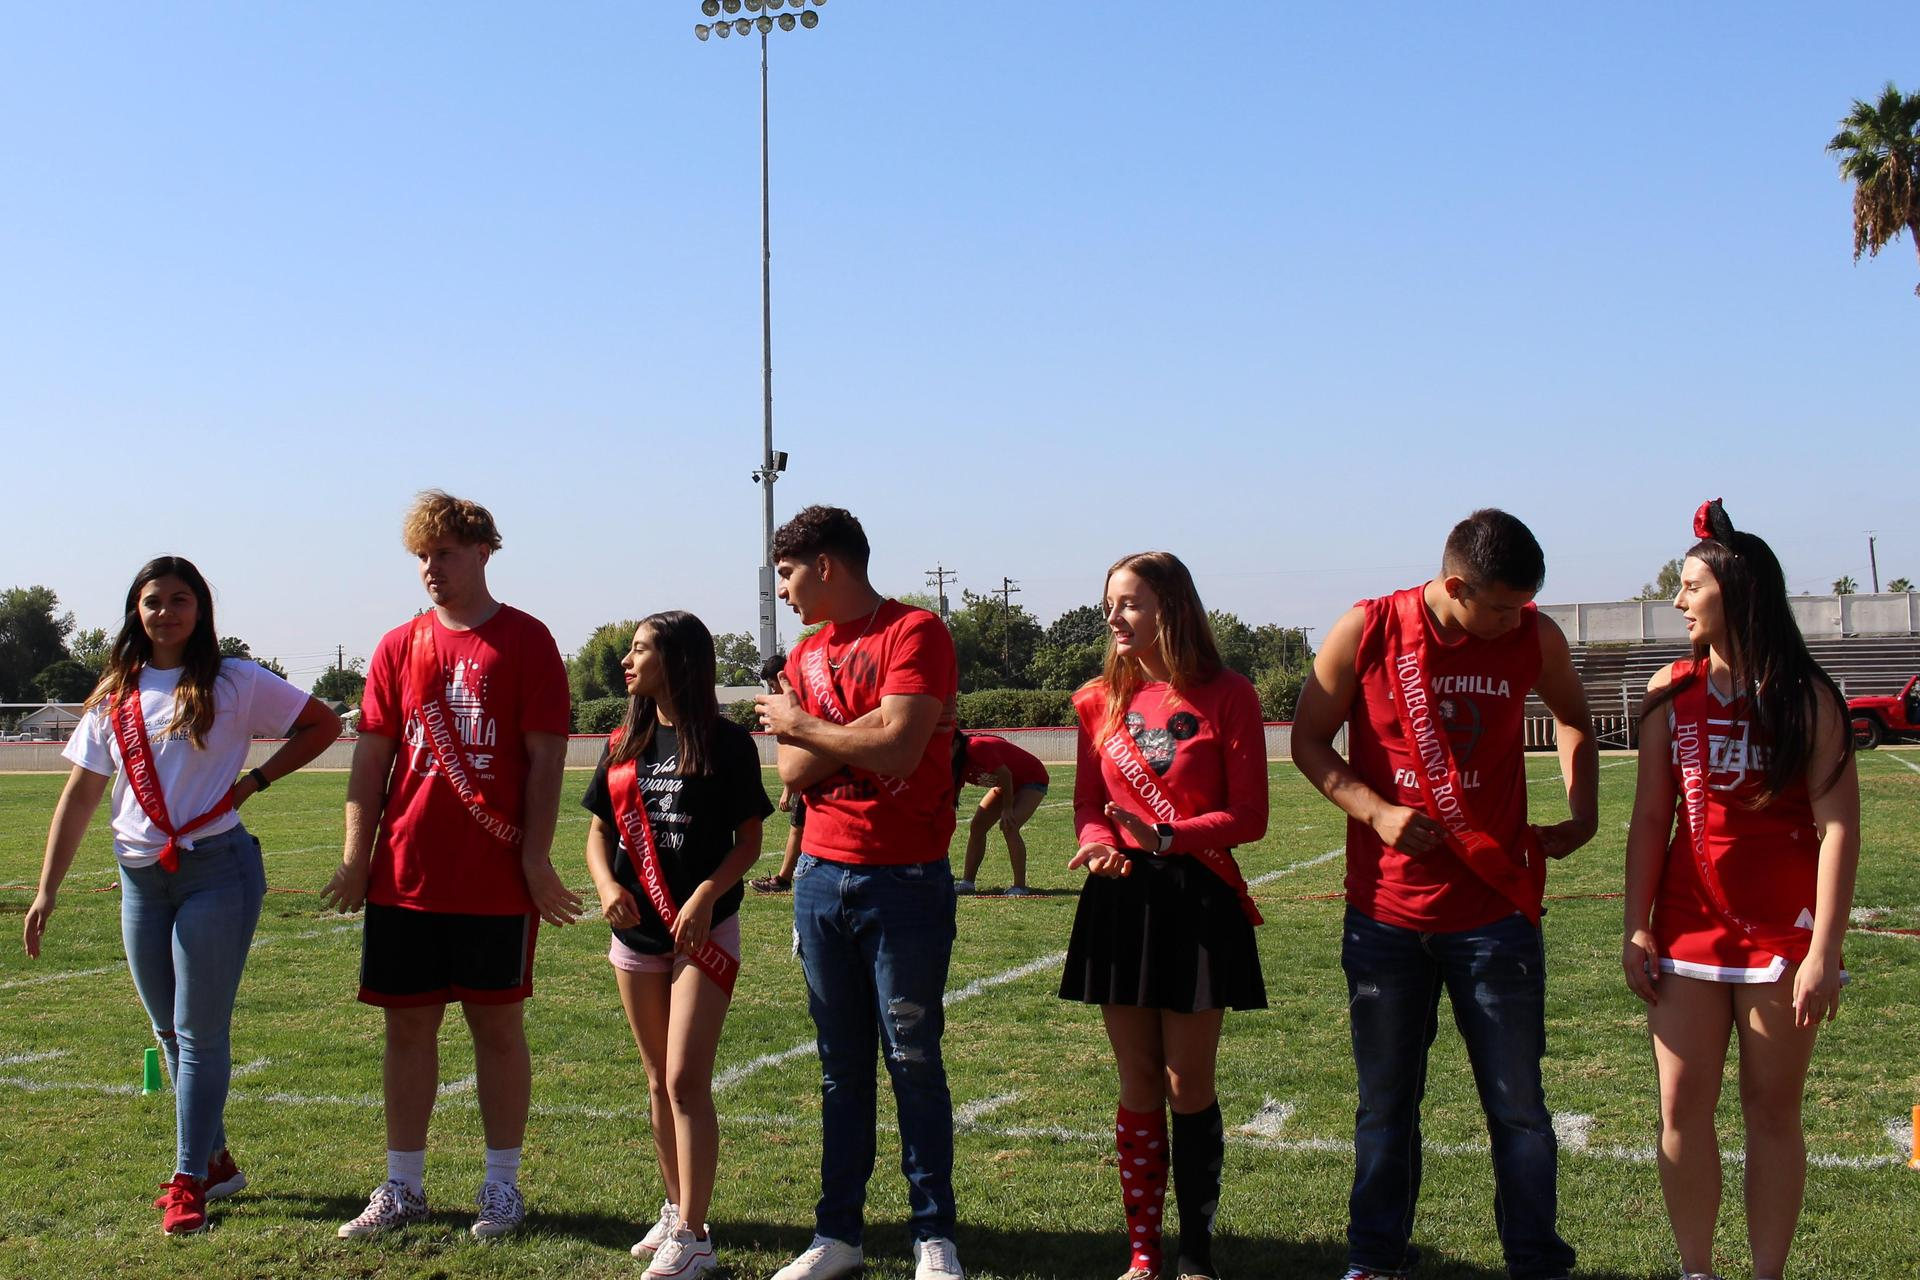 Homecoming king and queen candidates posing